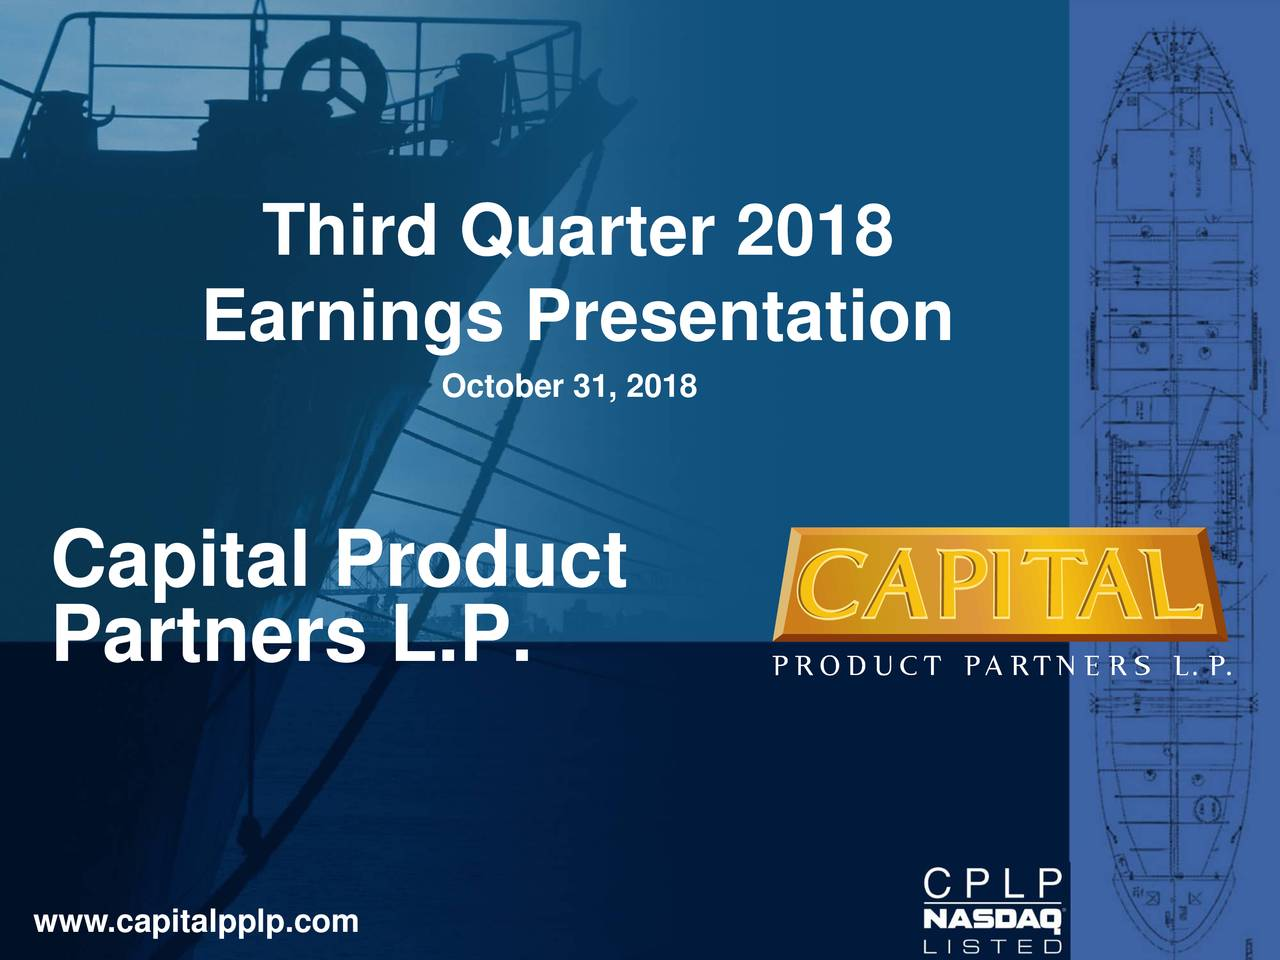 Earnings Presentation October 31, 2018 Capital Product Partners L.P.